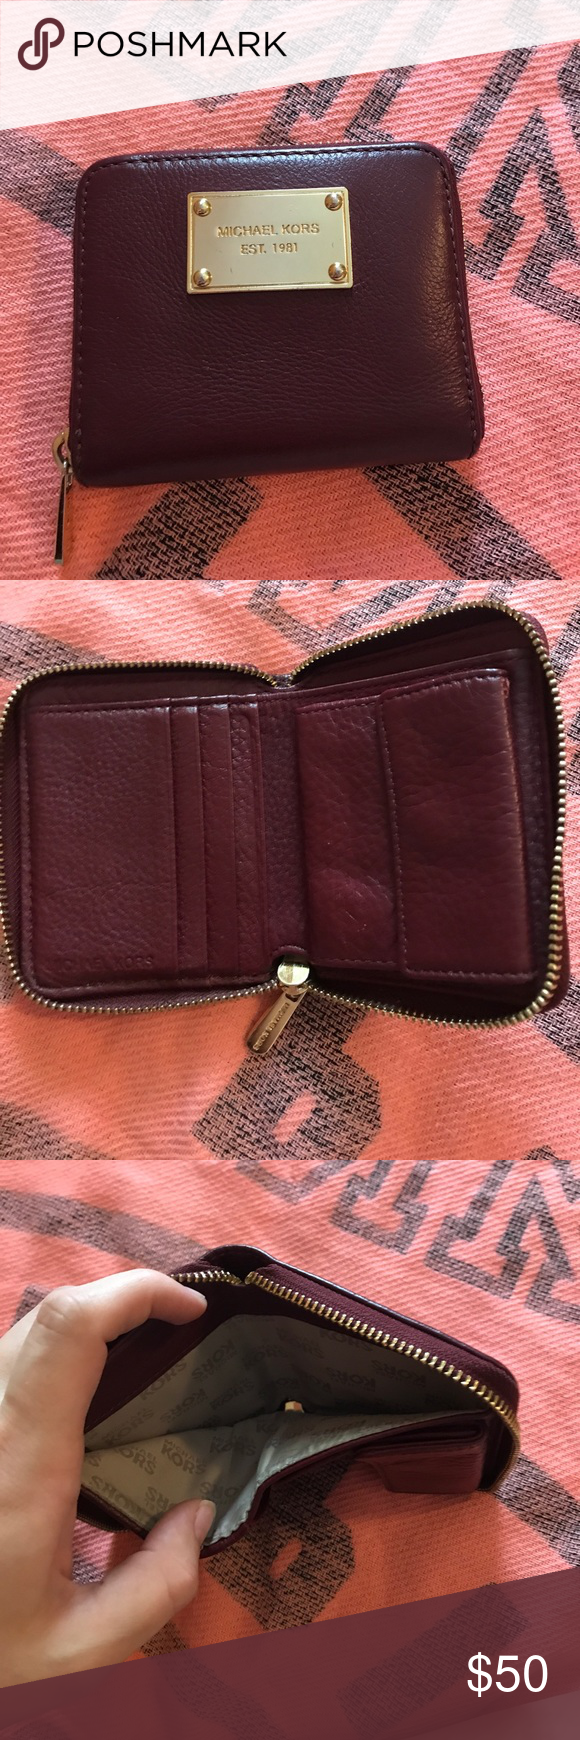 9b4aedc94ac8 Price Drop Michael Kors Small Wallet Price Firm! Wine Colored Michael Kors  Small Wallet. Gold Hardware. One Bill Compartment, Four Card Slots, ...